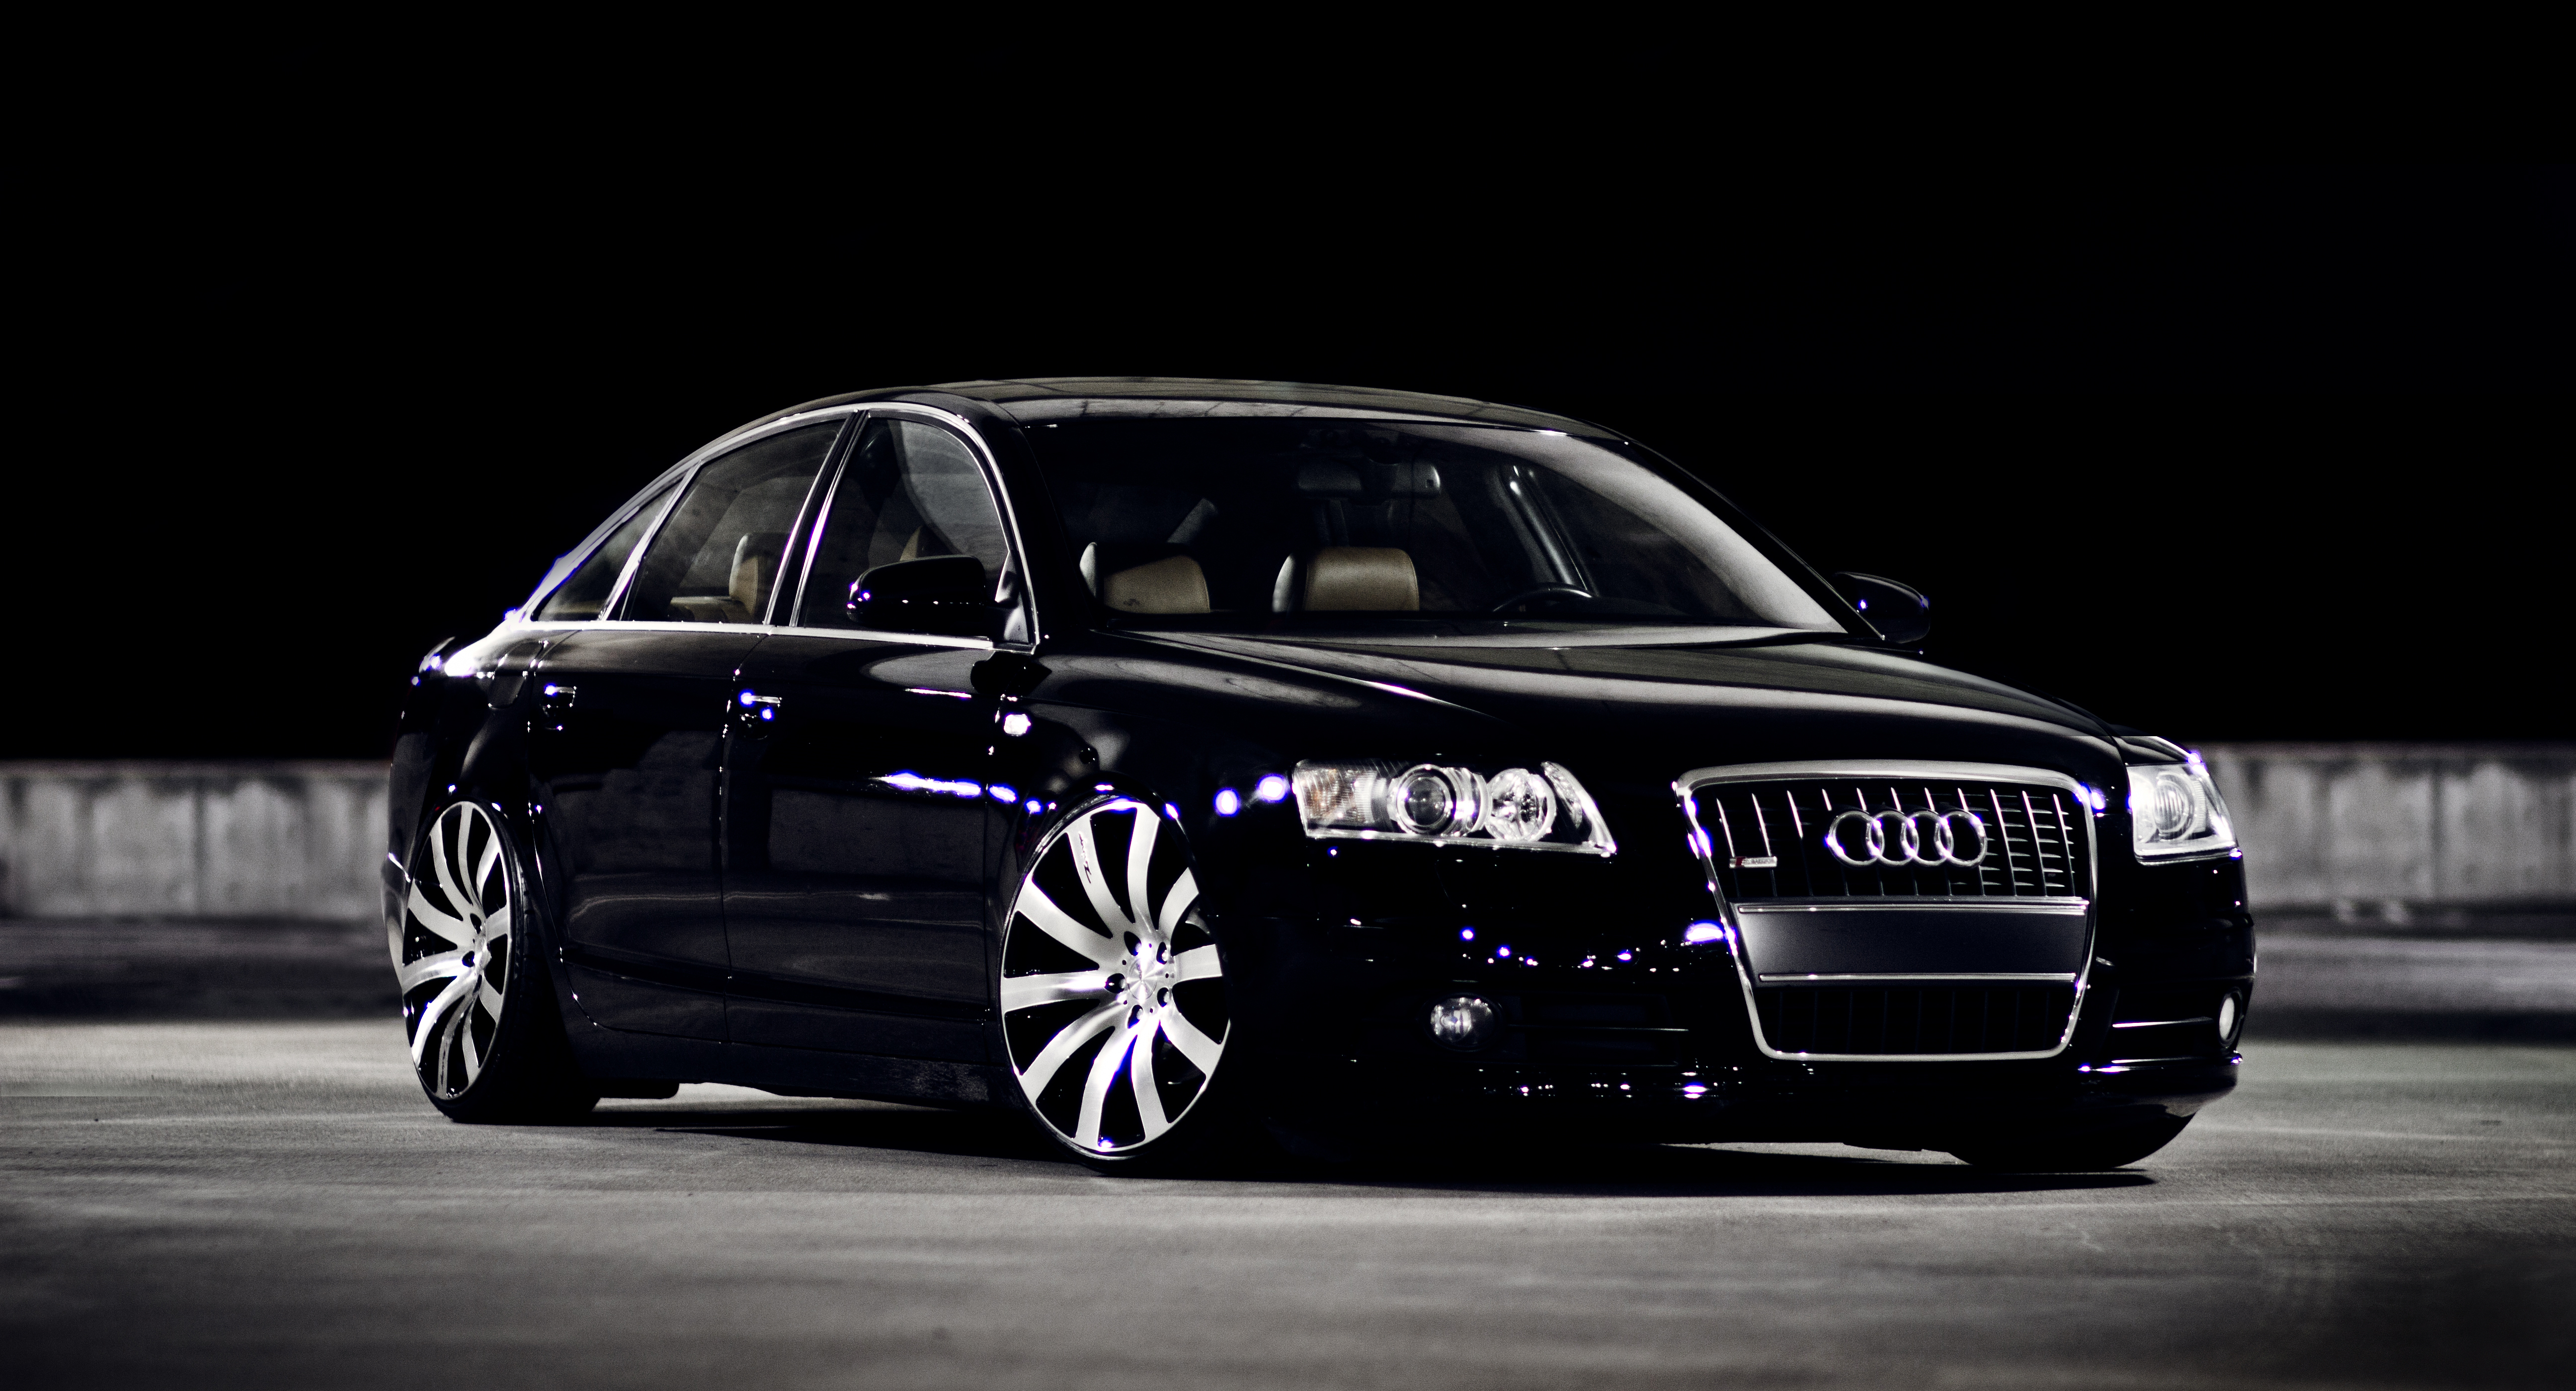 4K wallpaper   Cars   black audi A6   5184x2800 5184x2800